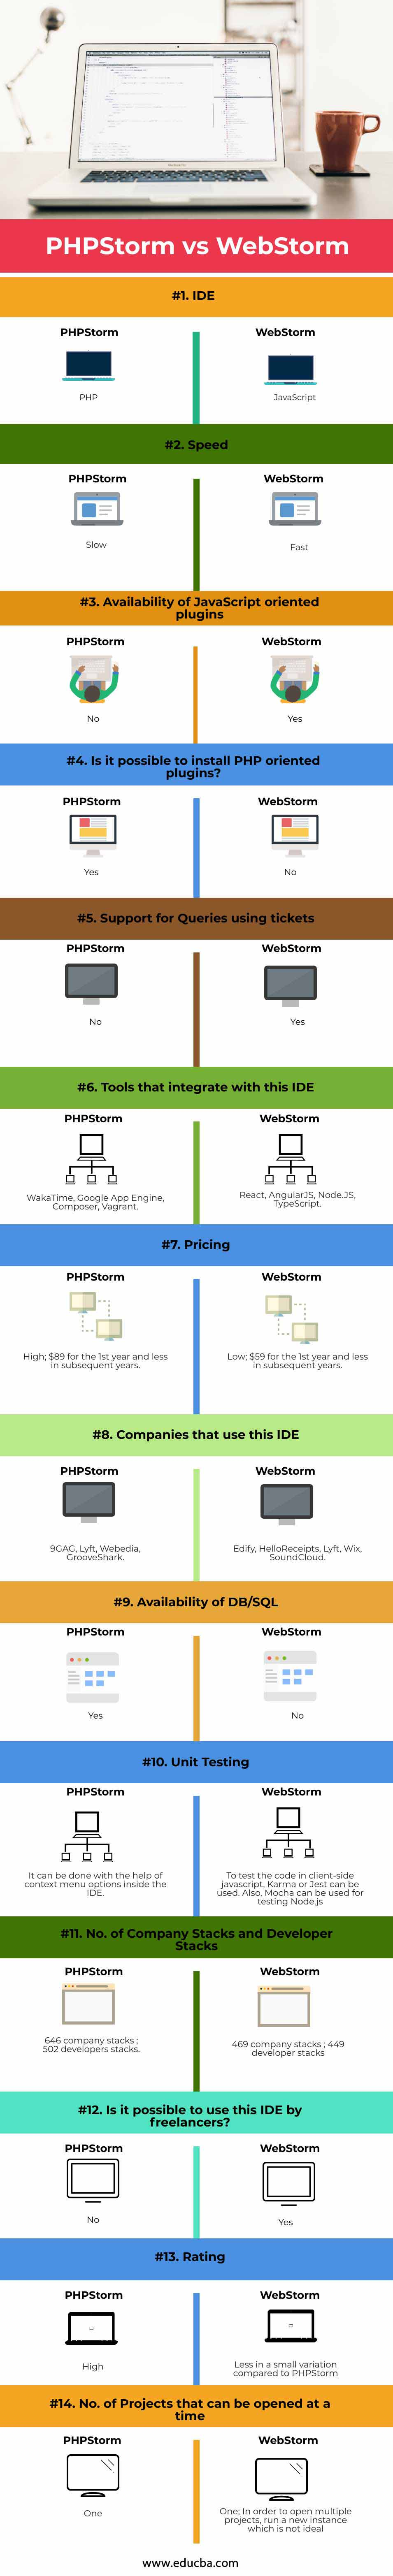 PHPStorm-vs-WebStorm-info